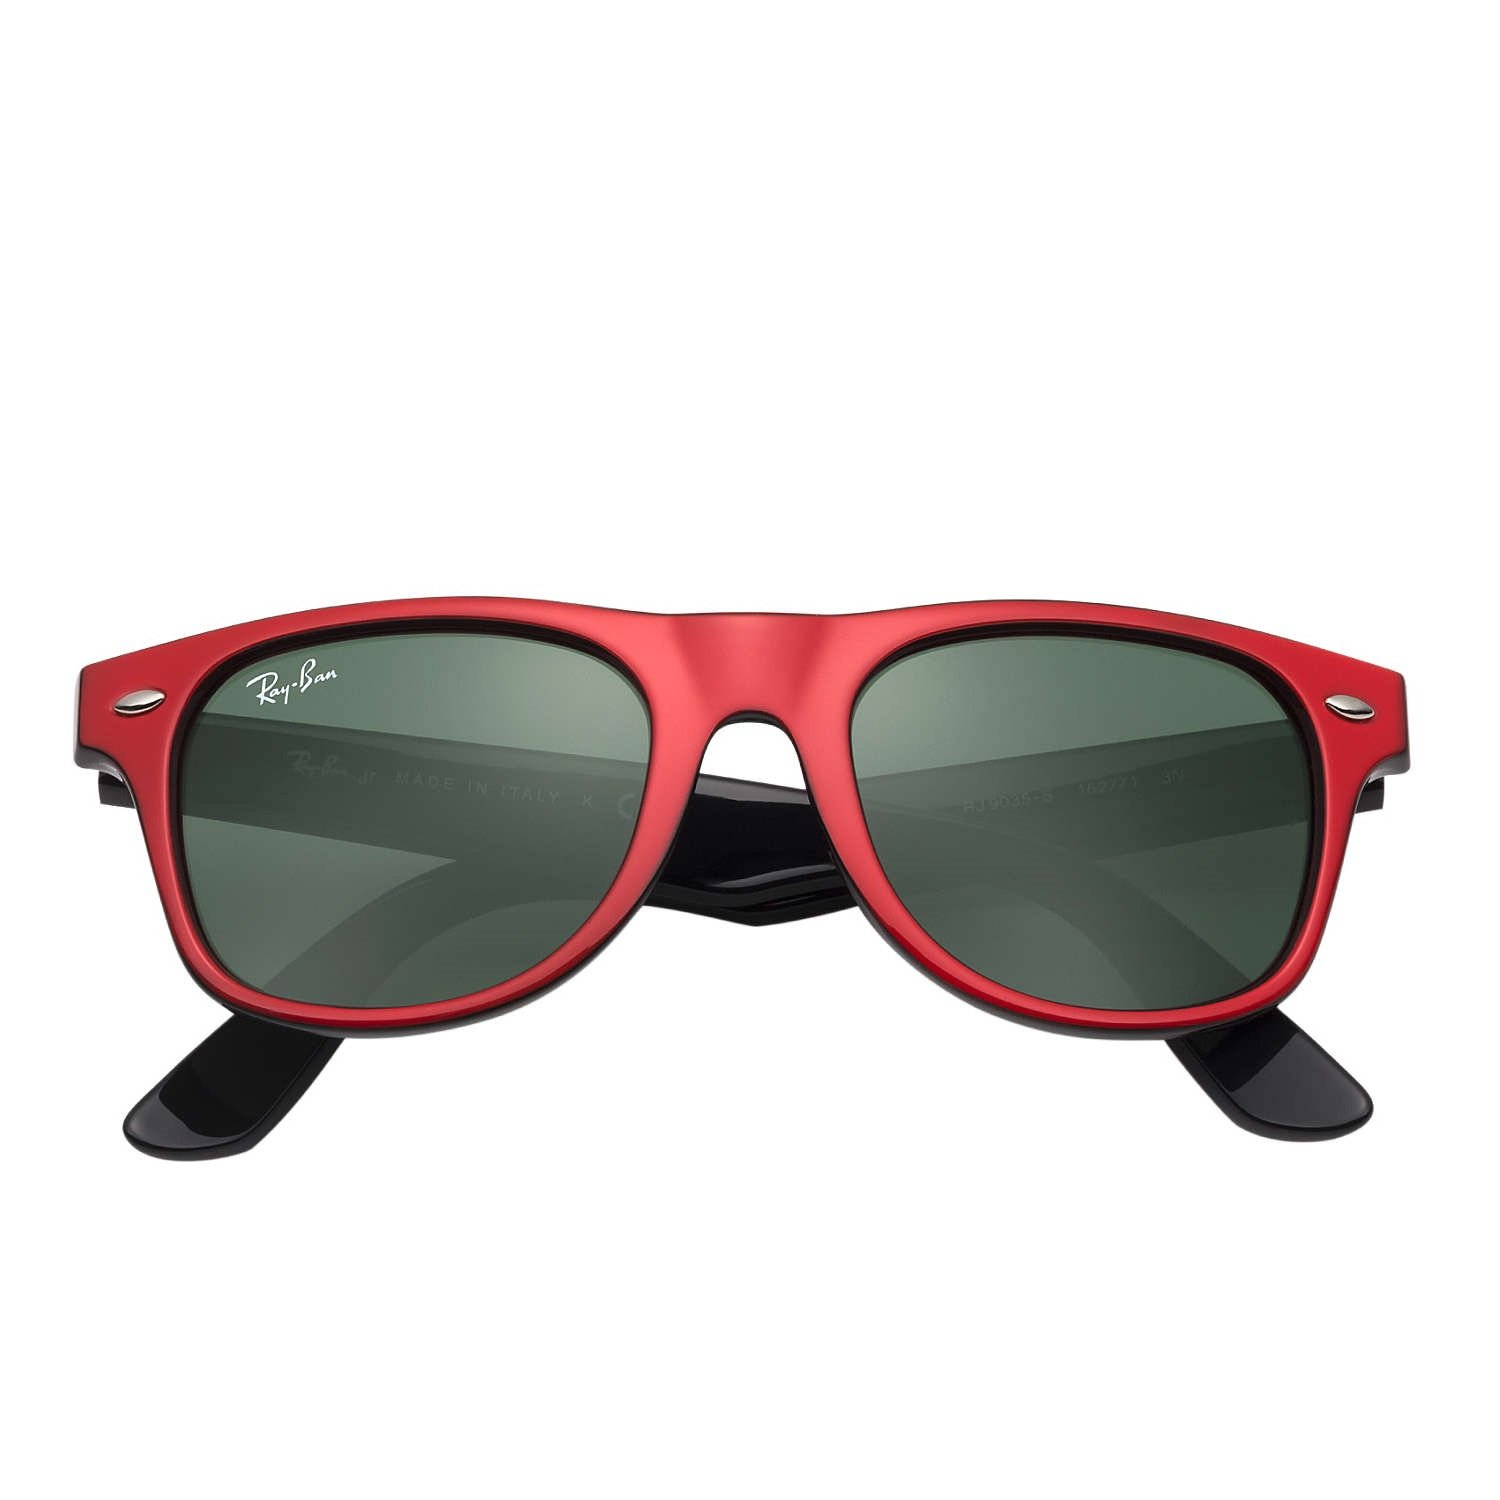 Ray-Ban Jr Wayfarer Sunglasses - Red/Black - 44mm